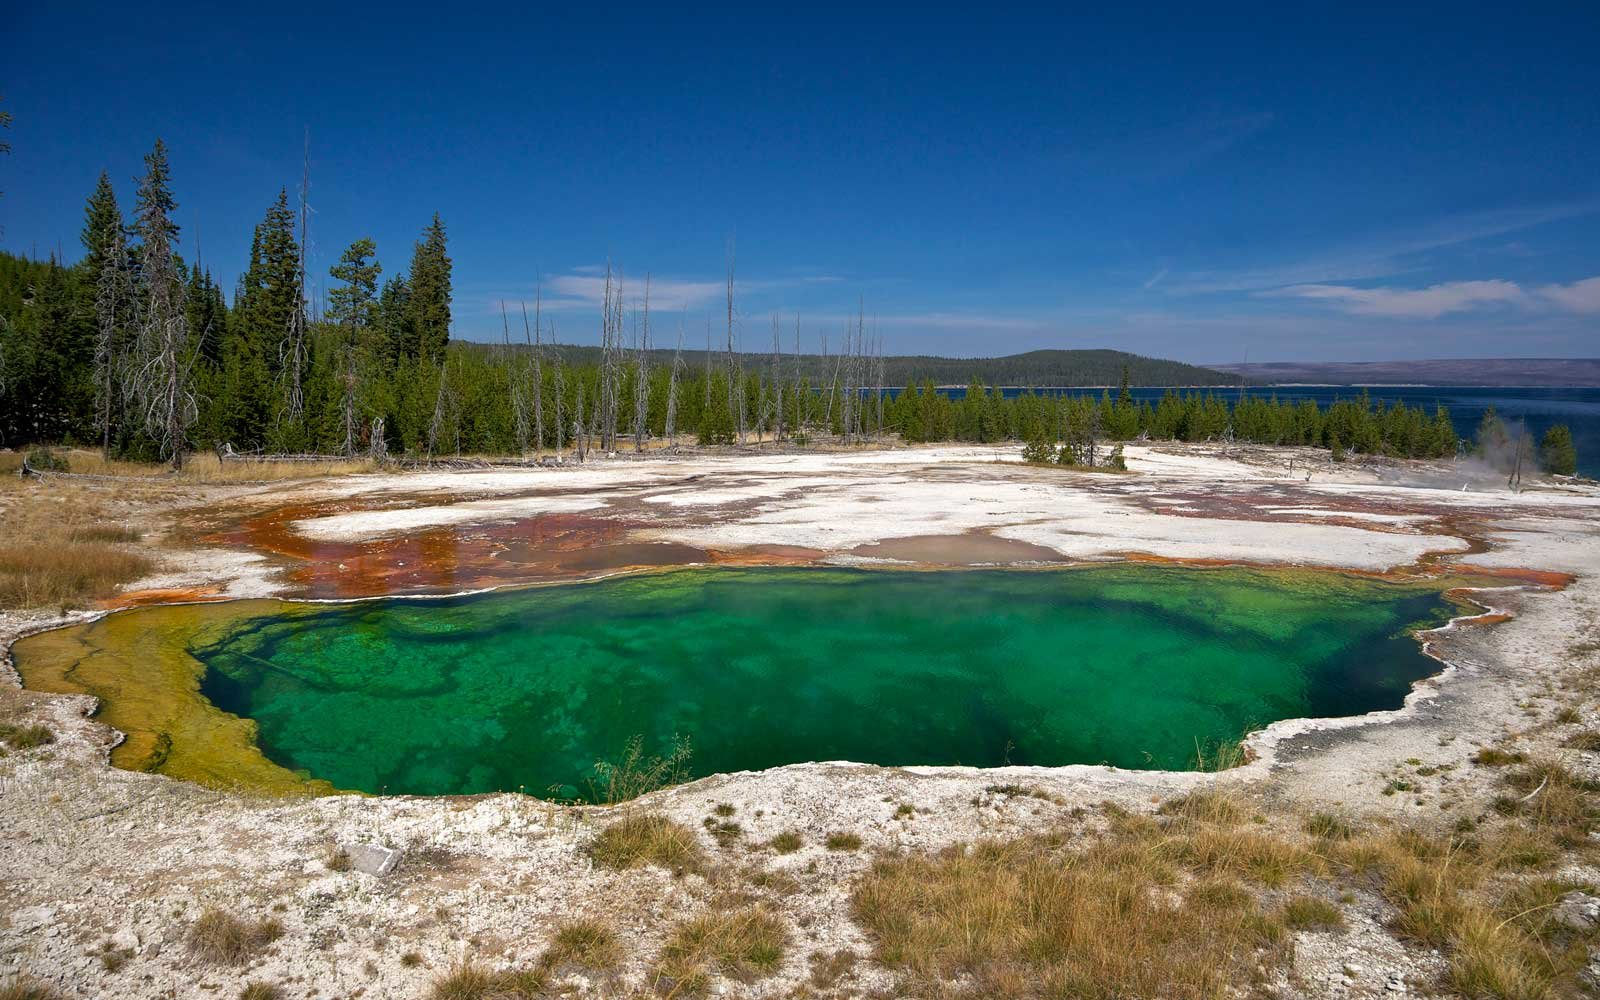 Abyss Pool, West Thumb Geyser Basin, Yellowstone National Park, UNESCO World Heritage Site, Wyoming